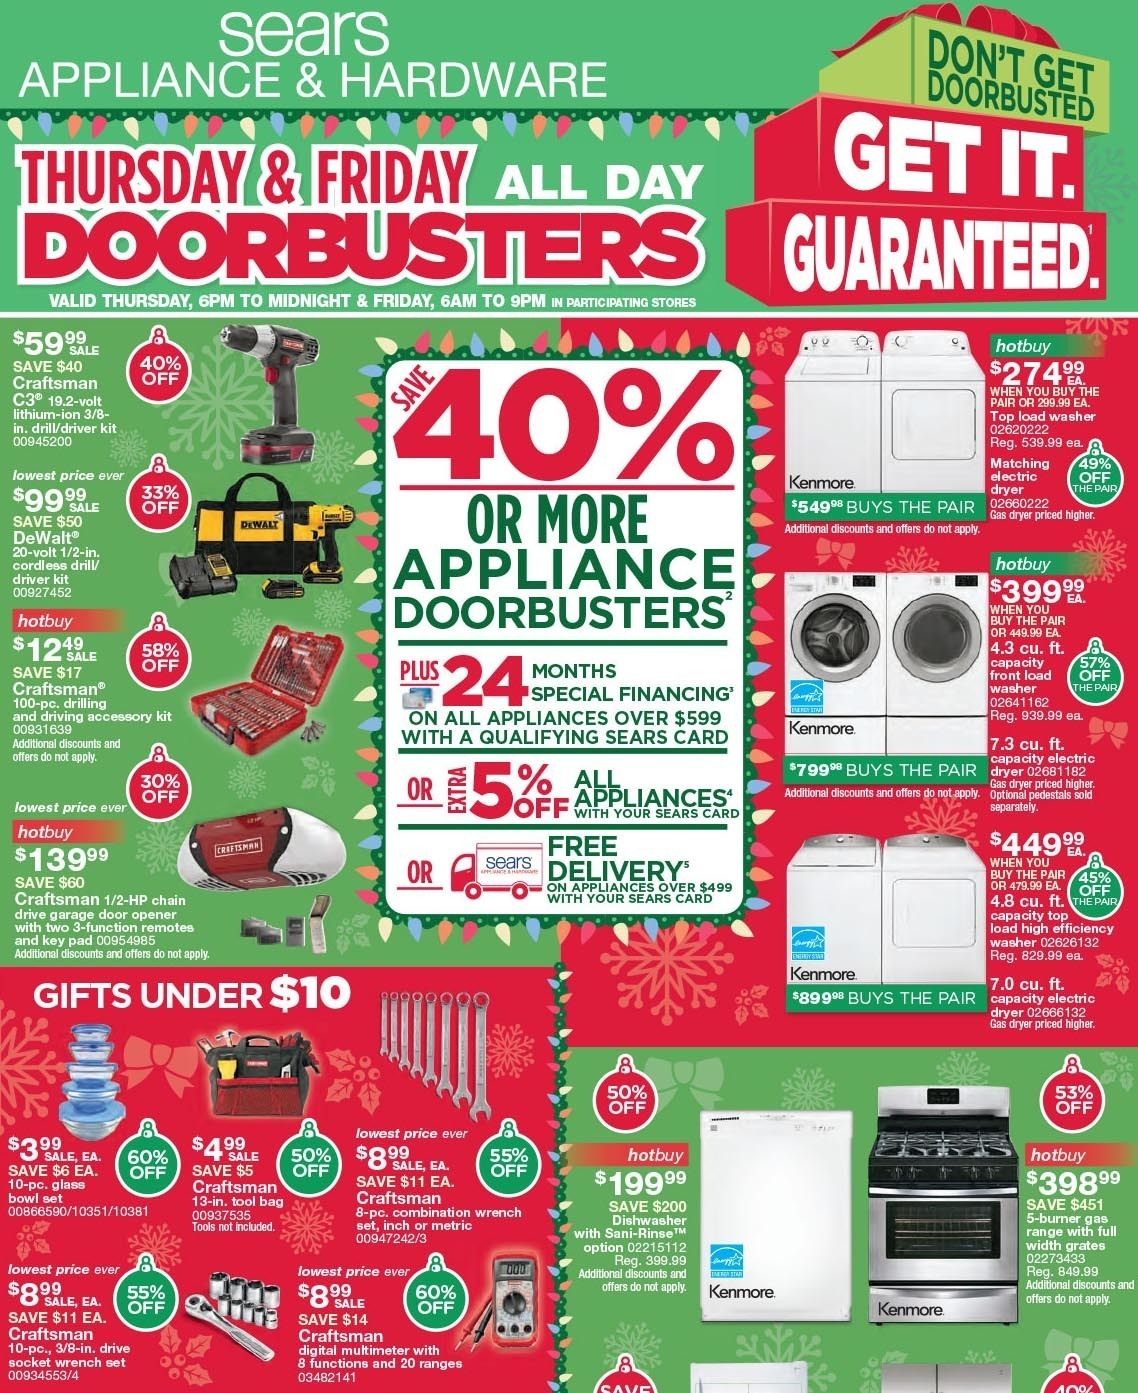 Sears Appliance and Hardware Black Friday 2015 Ad Page 1